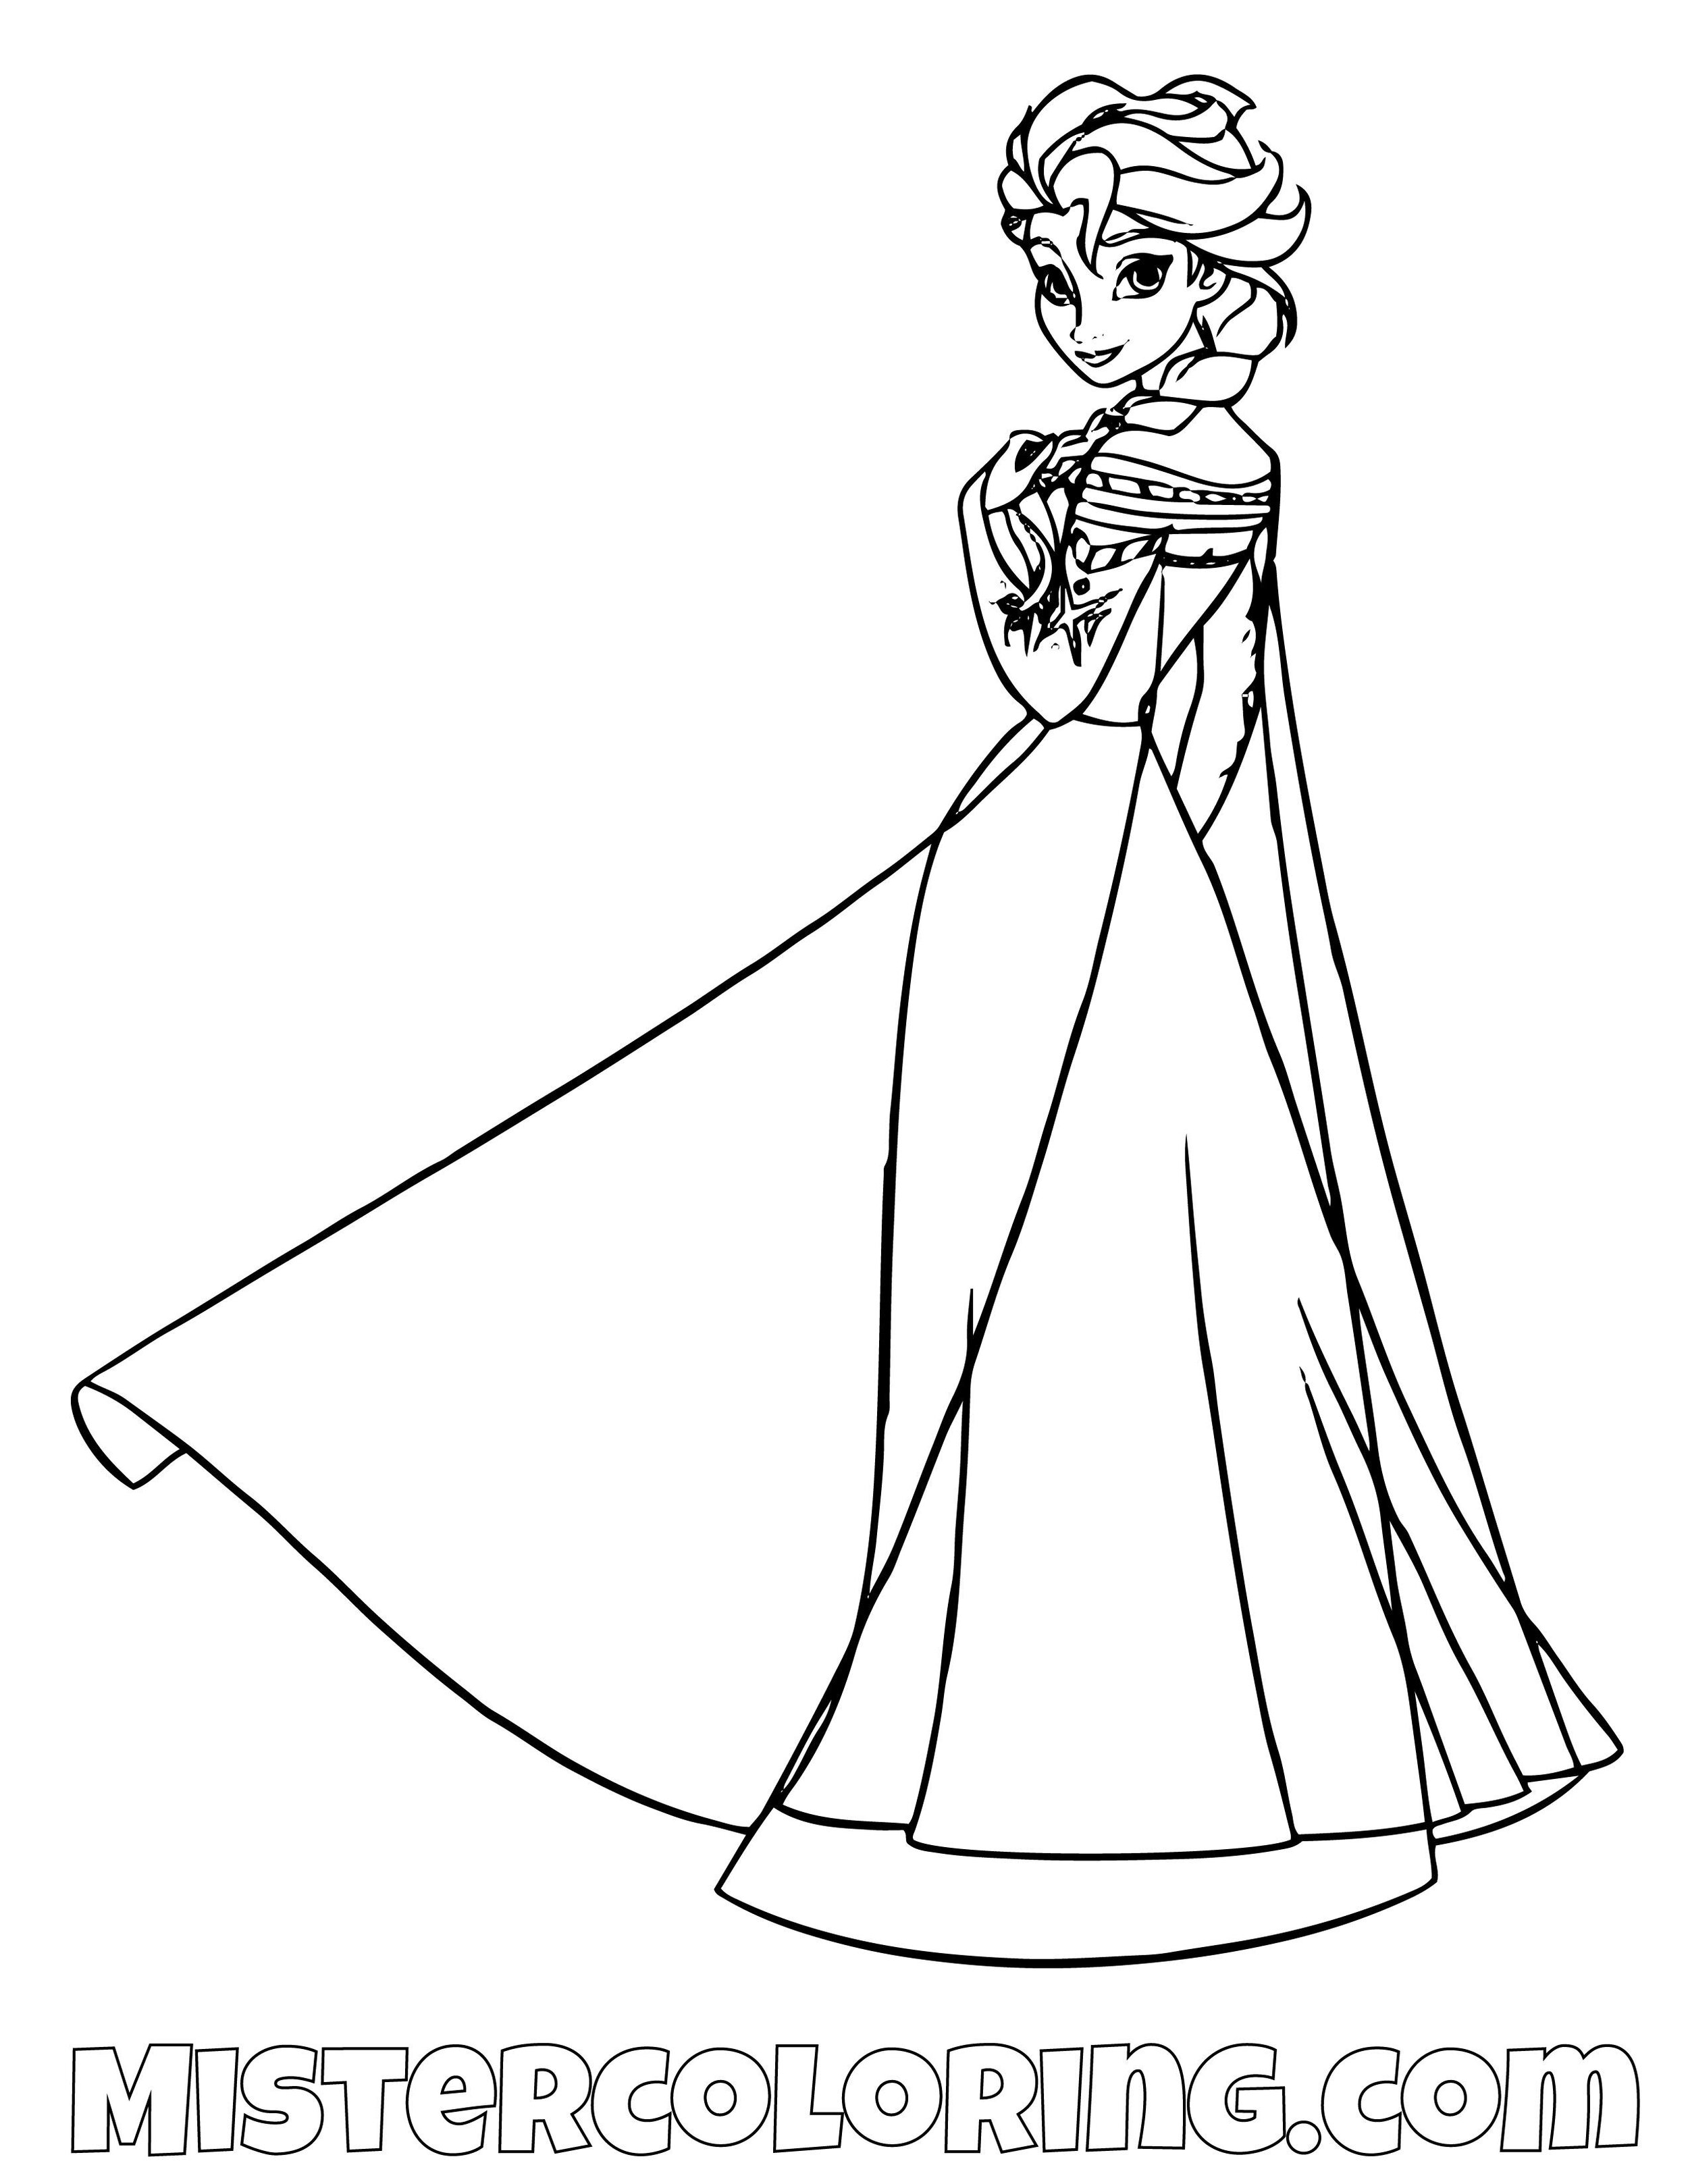 Coloring Pages Of Elsa From Frozen 2 | Super Duper Coloring